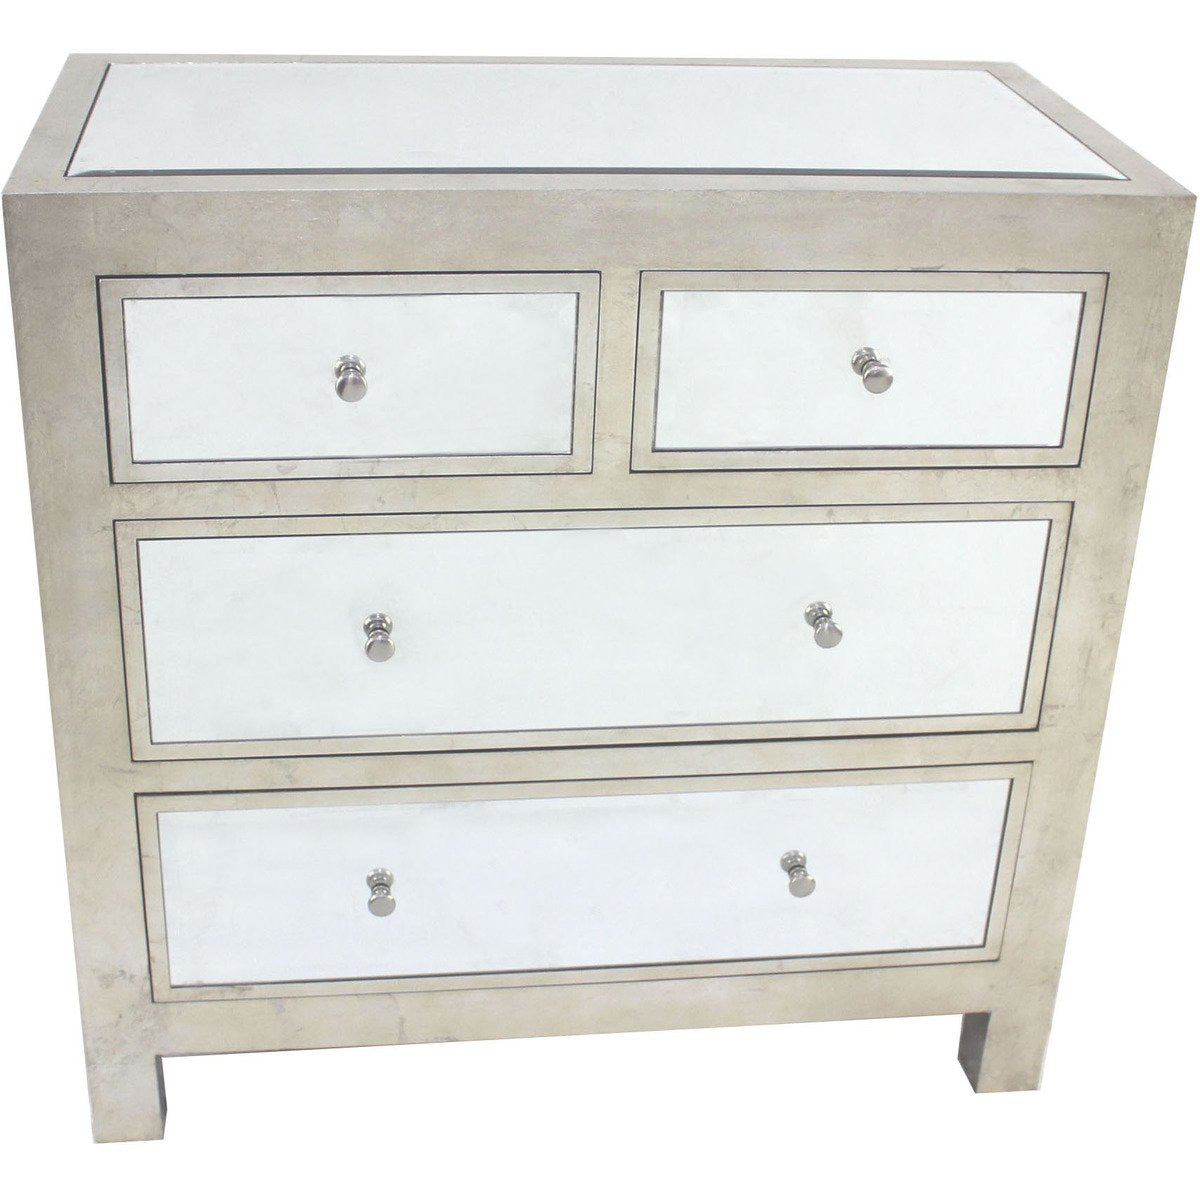 Cabinet & Storage Chests - Wooden Cabinet With Mirror Accented Top With Four Drawers, Silver